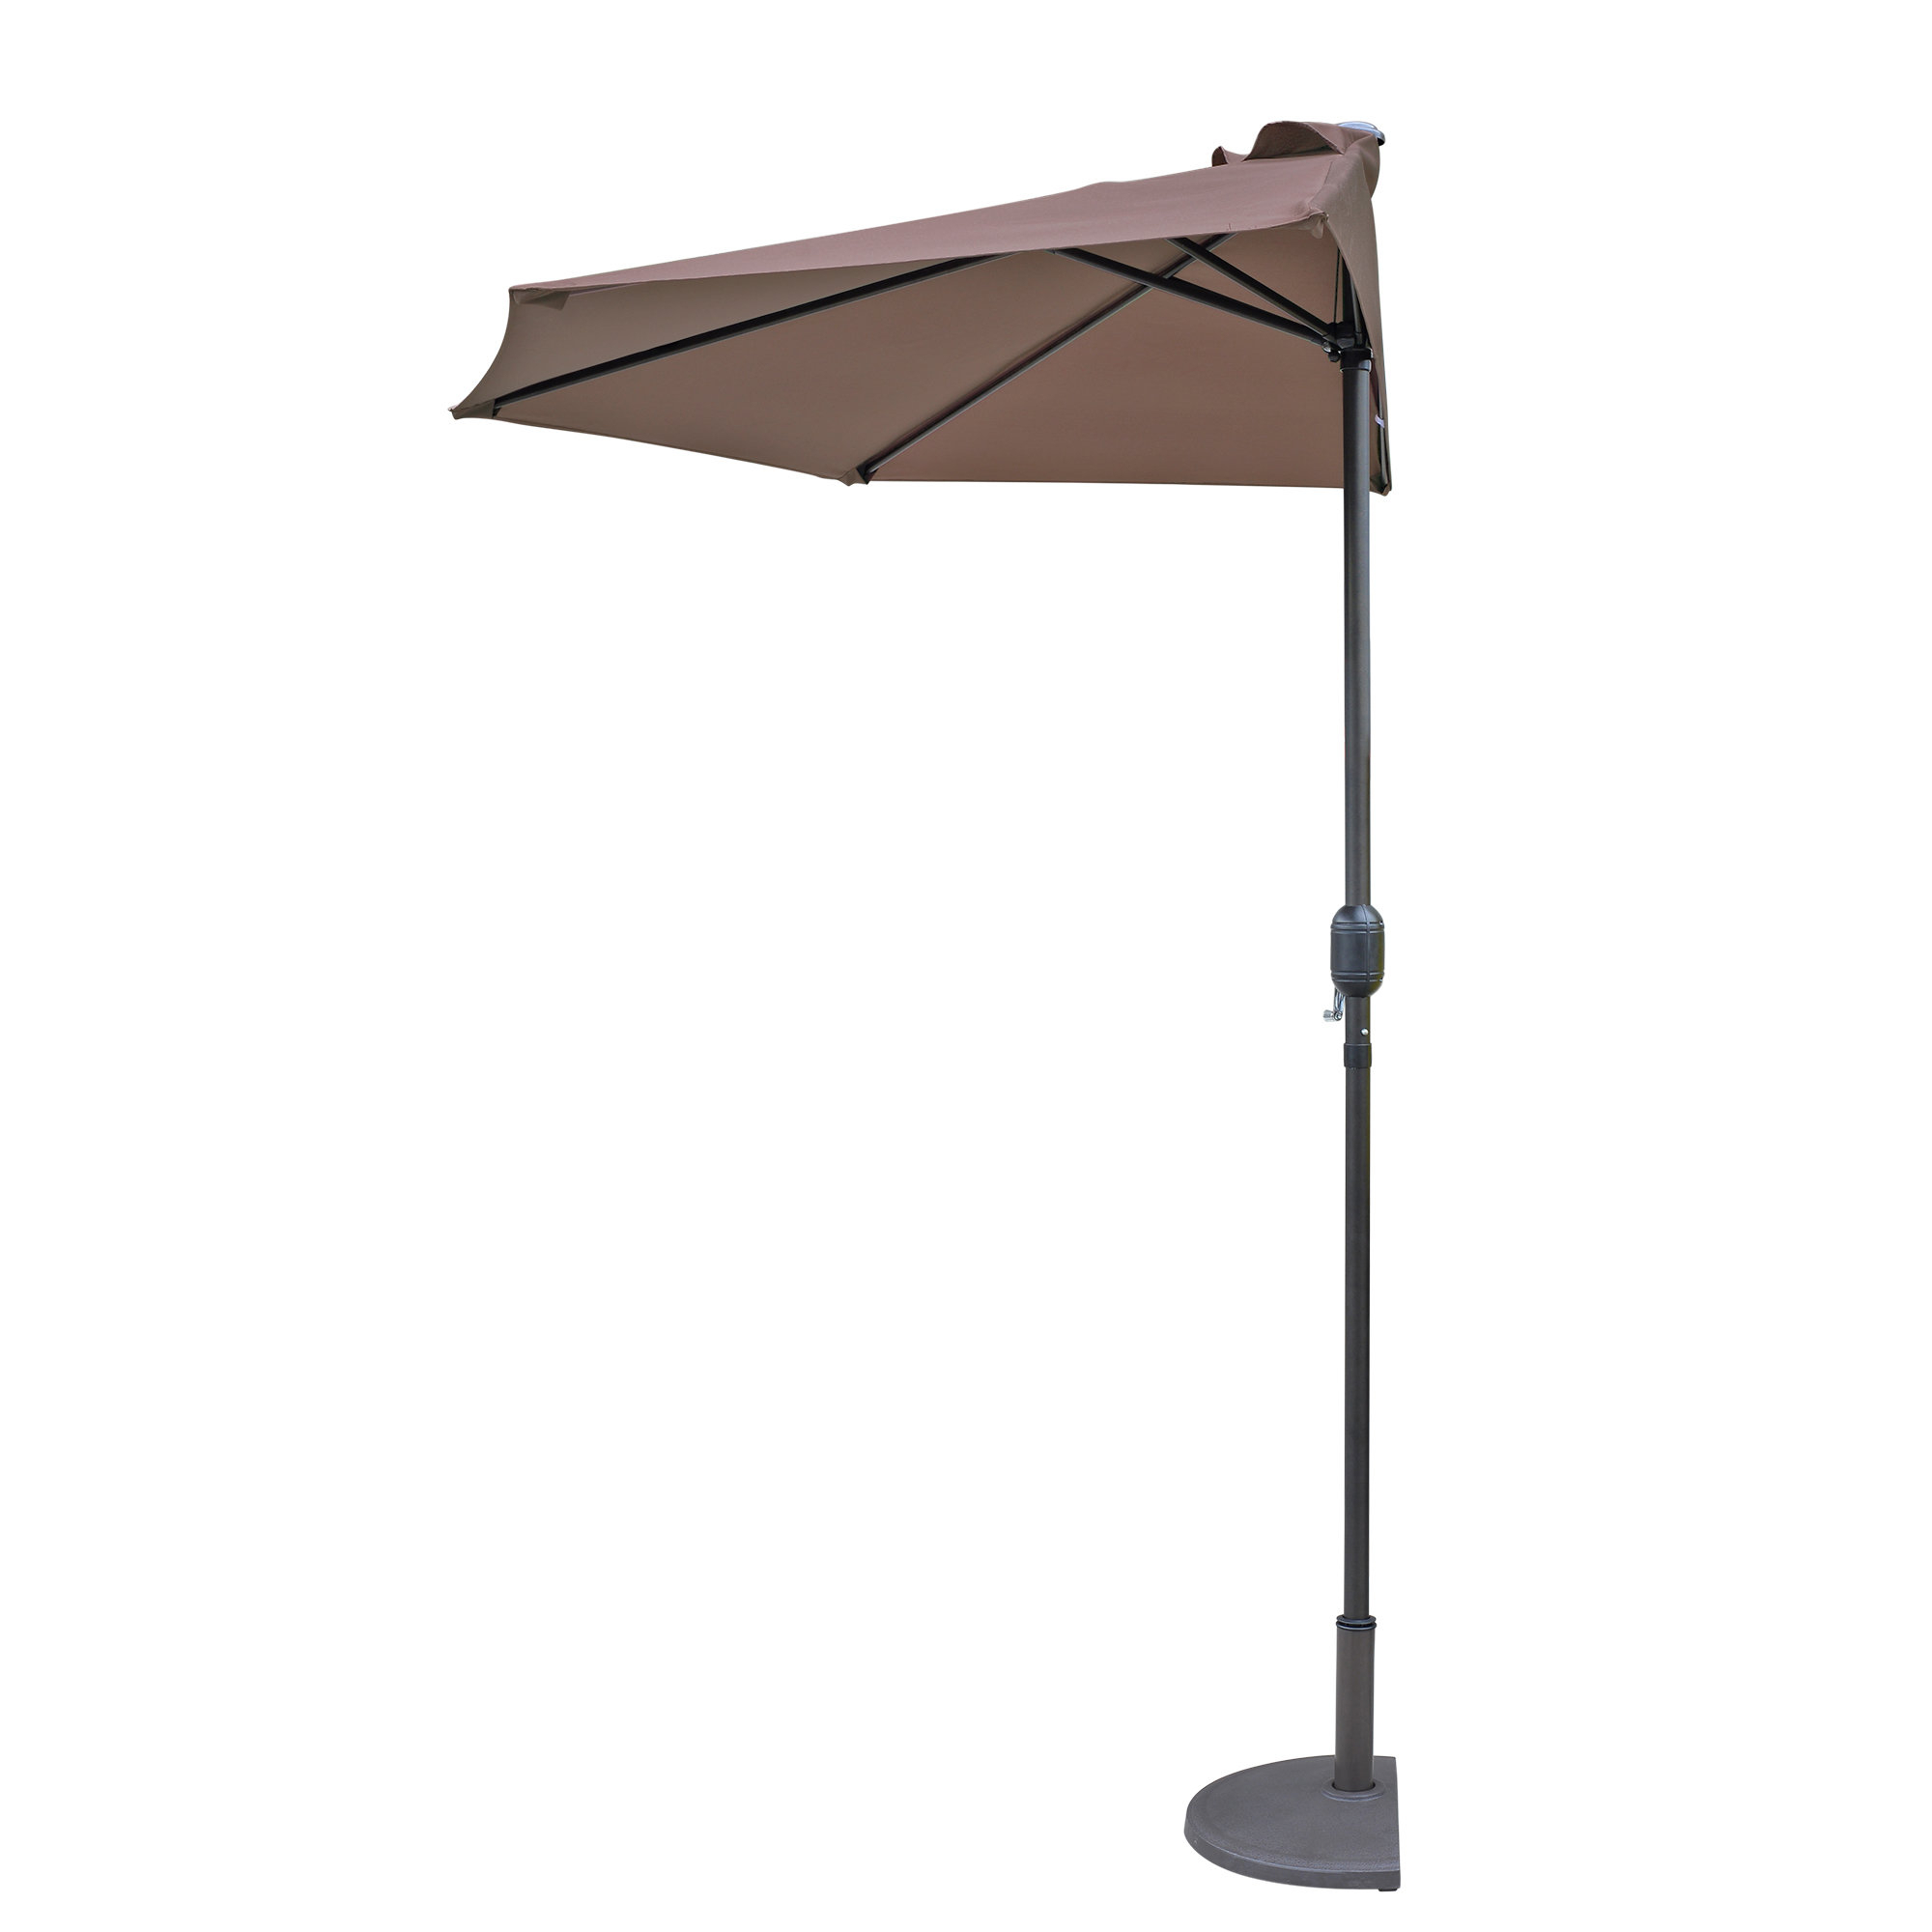 Lanai 8.75' Market Umbrella In Best And Newest Monty Half Market Umbrellas (Gallery 5 of 20)